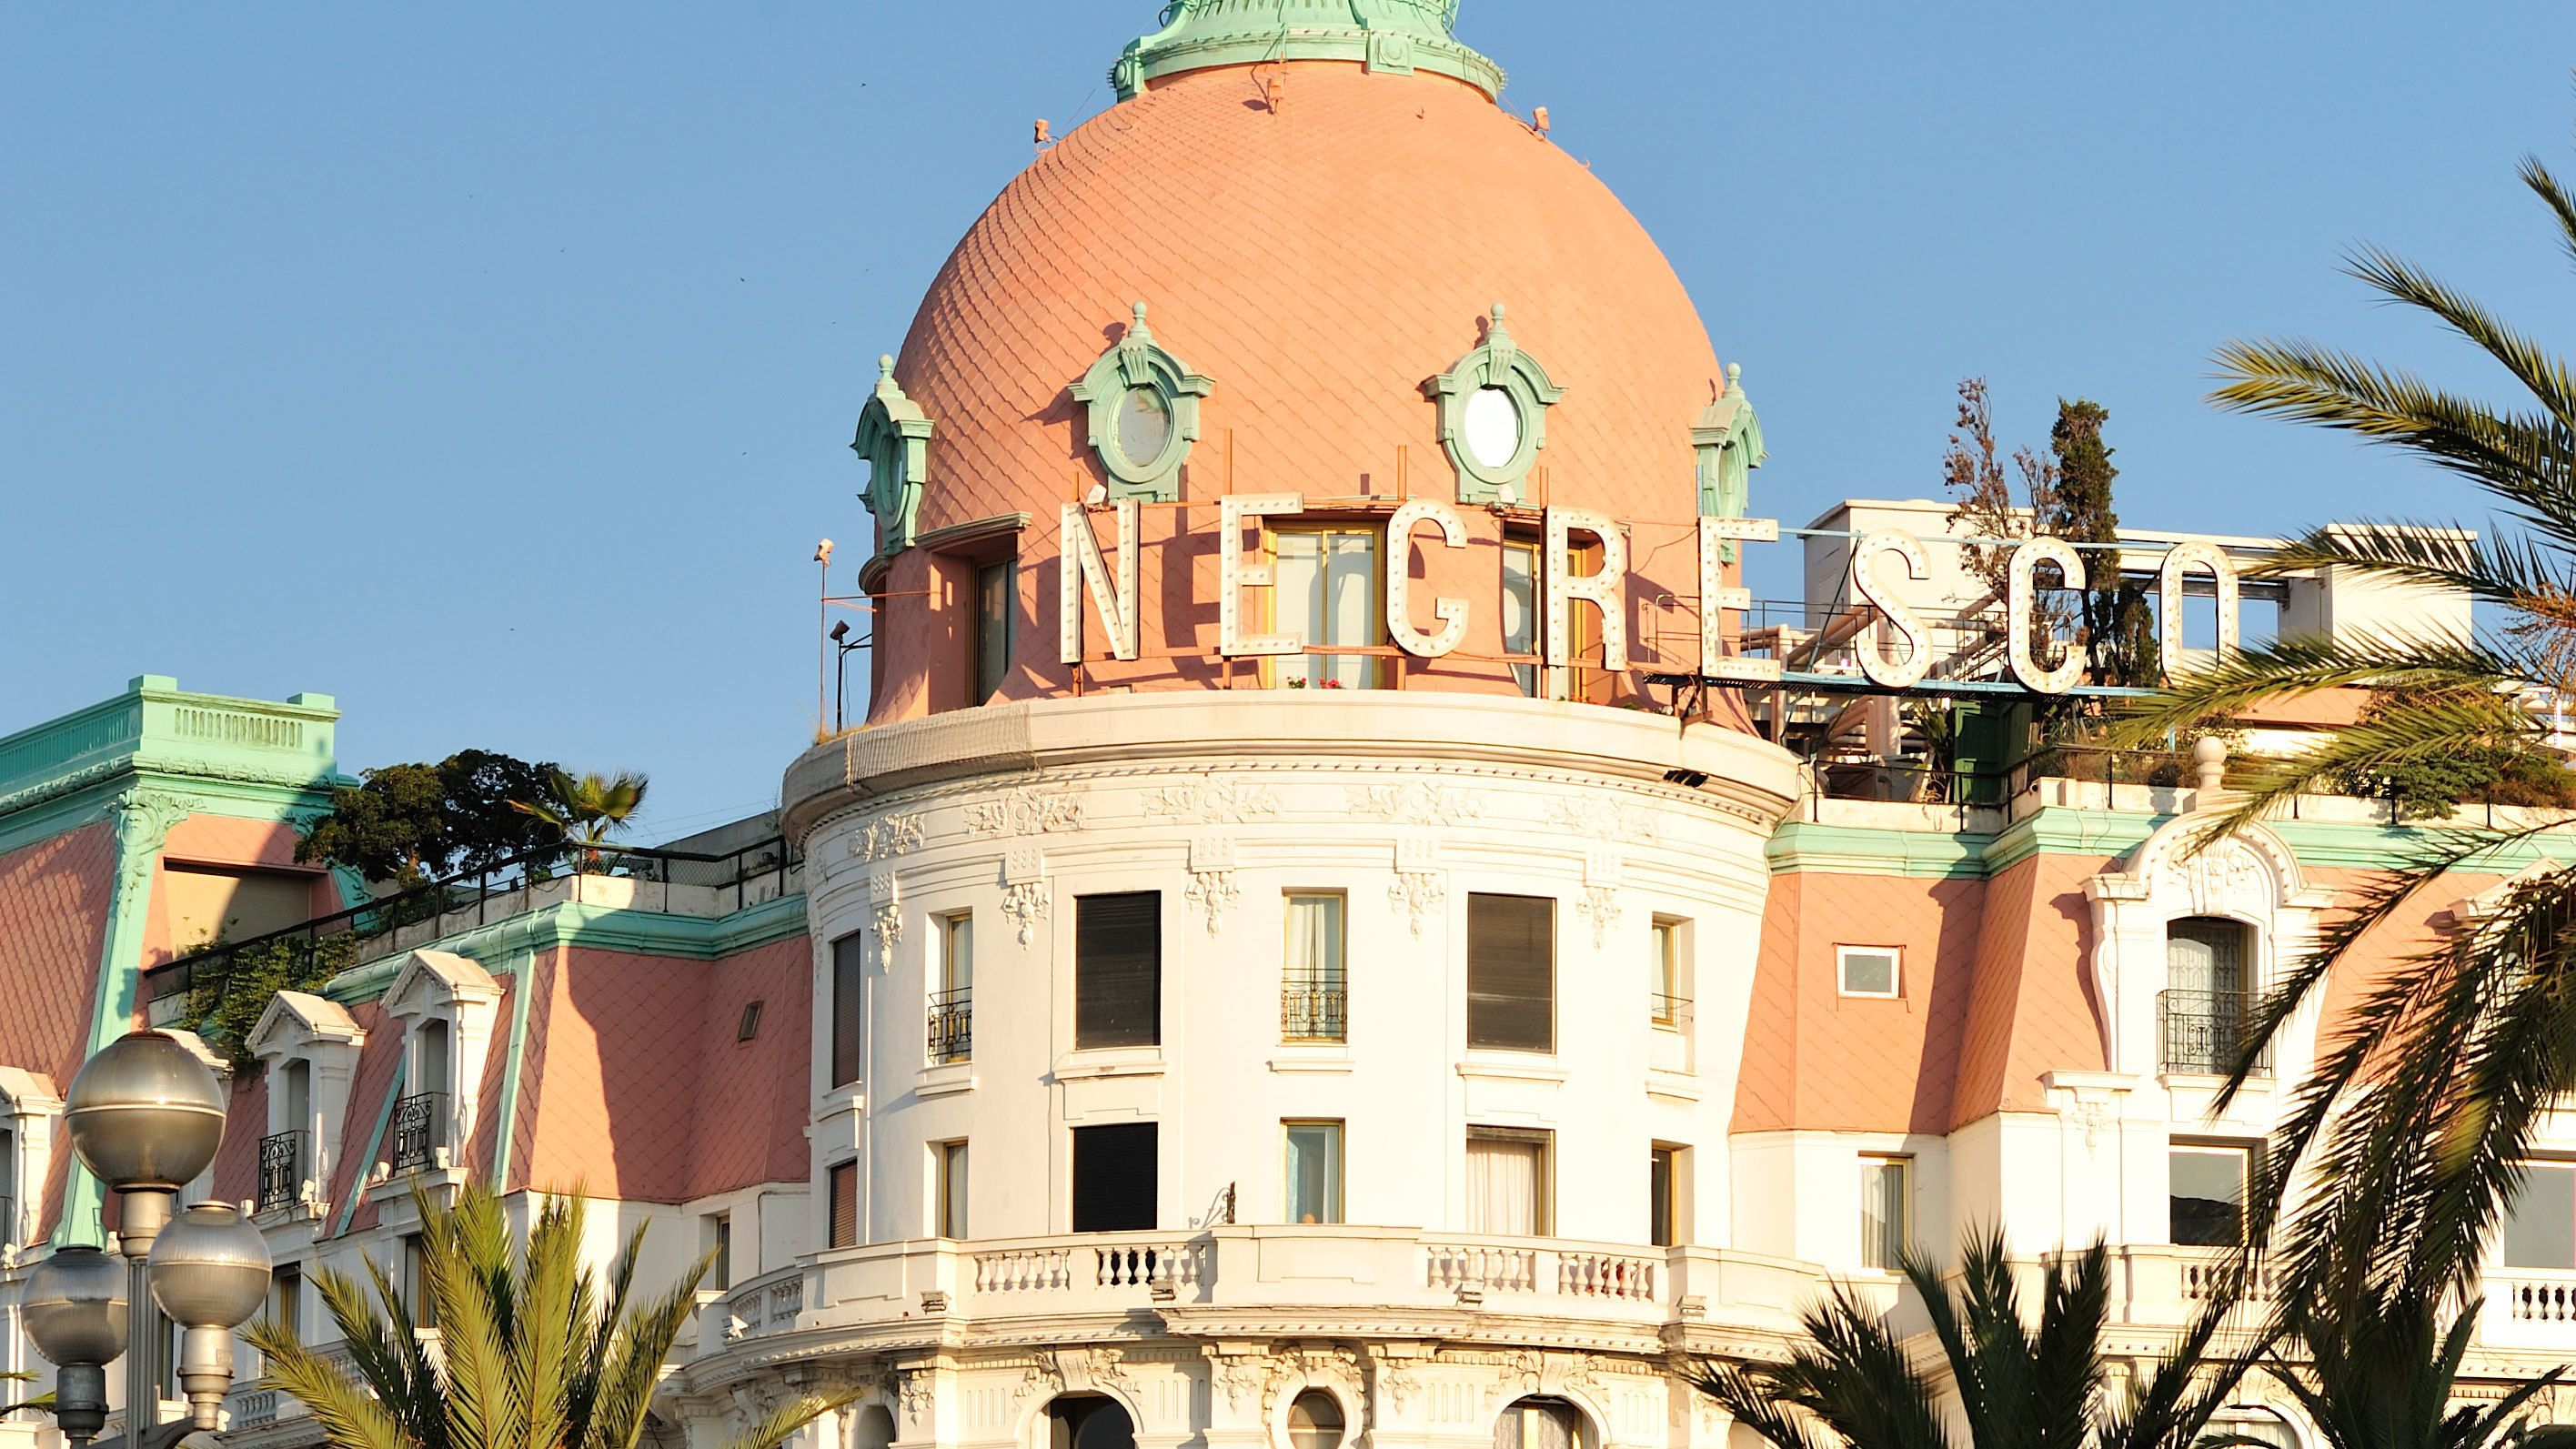 Visiting the Negresco Hotel in Cannes